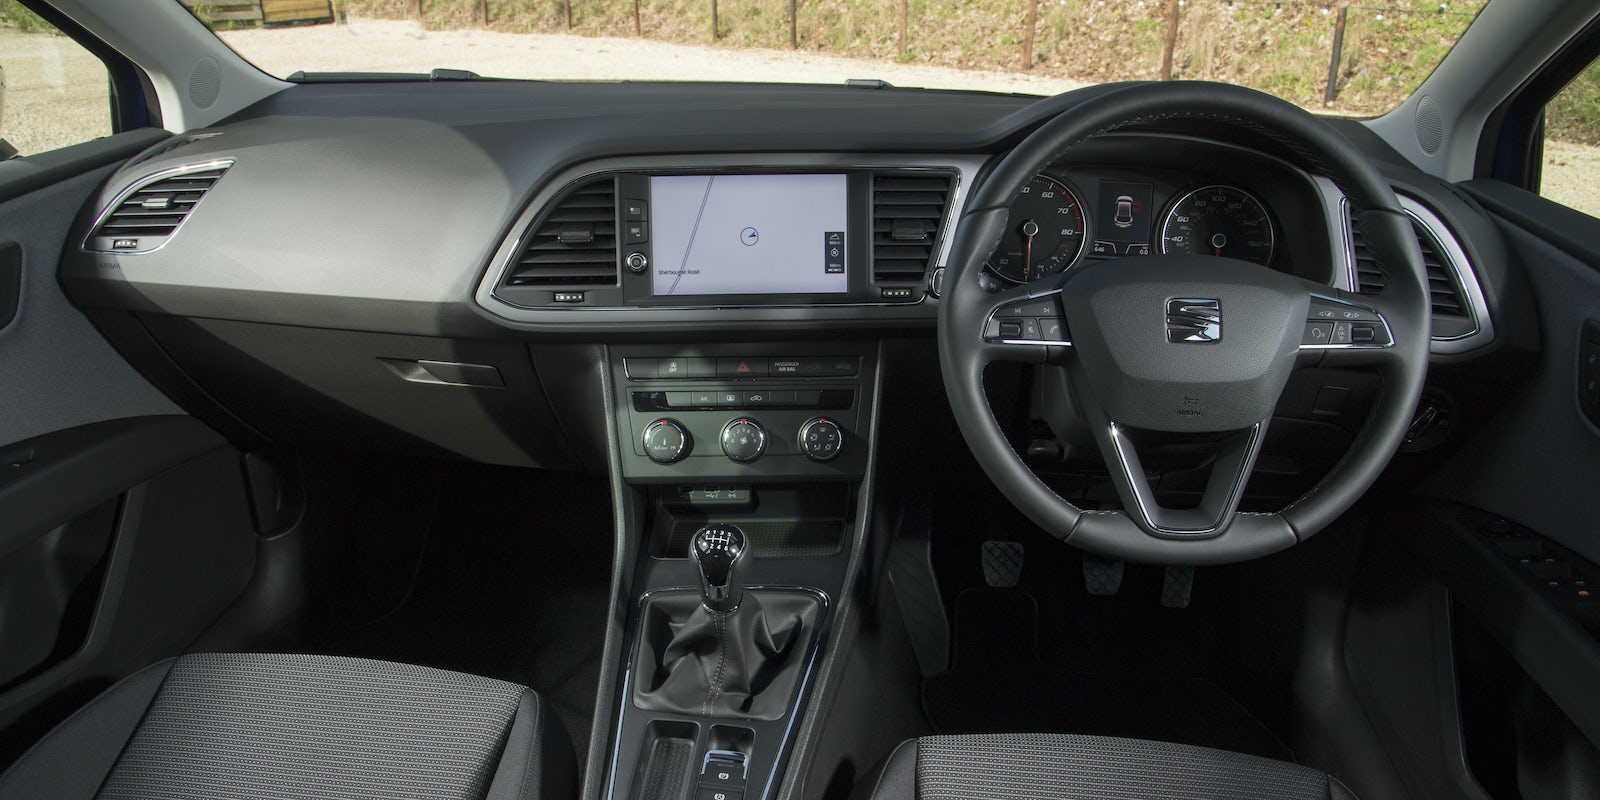 https://carwow-uk-wp-2.imgix.net/seat-leon-interior-dashboard.jpg?ixlib=rb-1.1.0&fit=crop&w=1600&h=800&q=60&cs=tinysrgb&auto=format